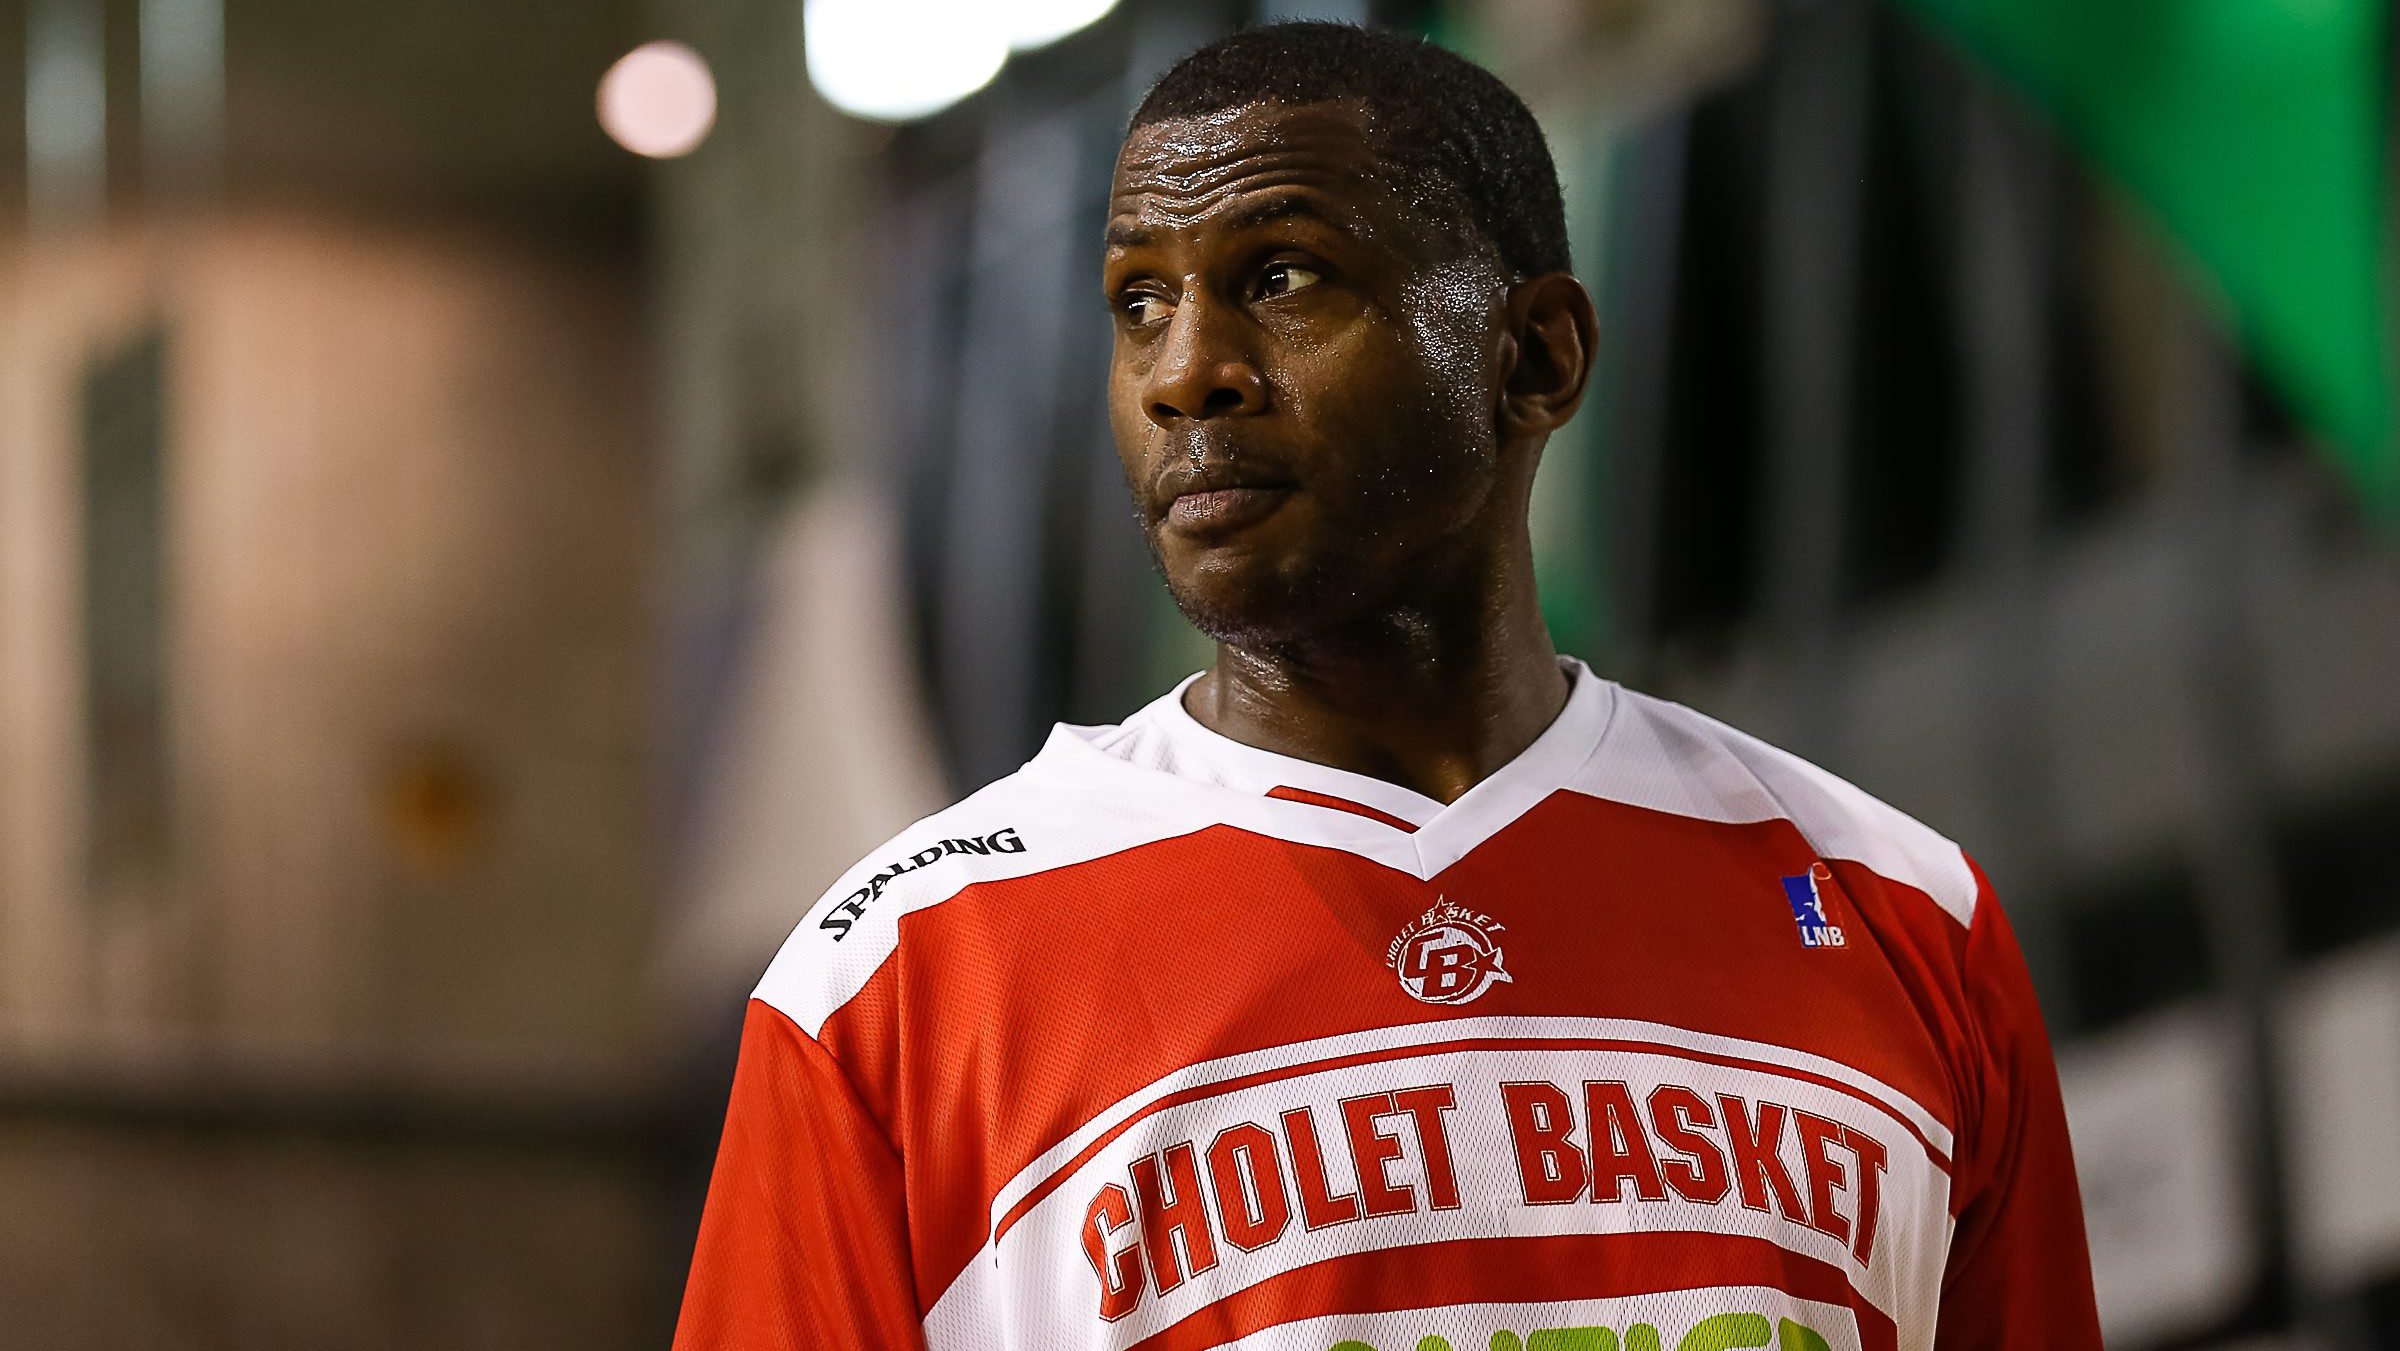 Michael Wright, l'ancien joueur de Cholet Basket, assassin� � New York